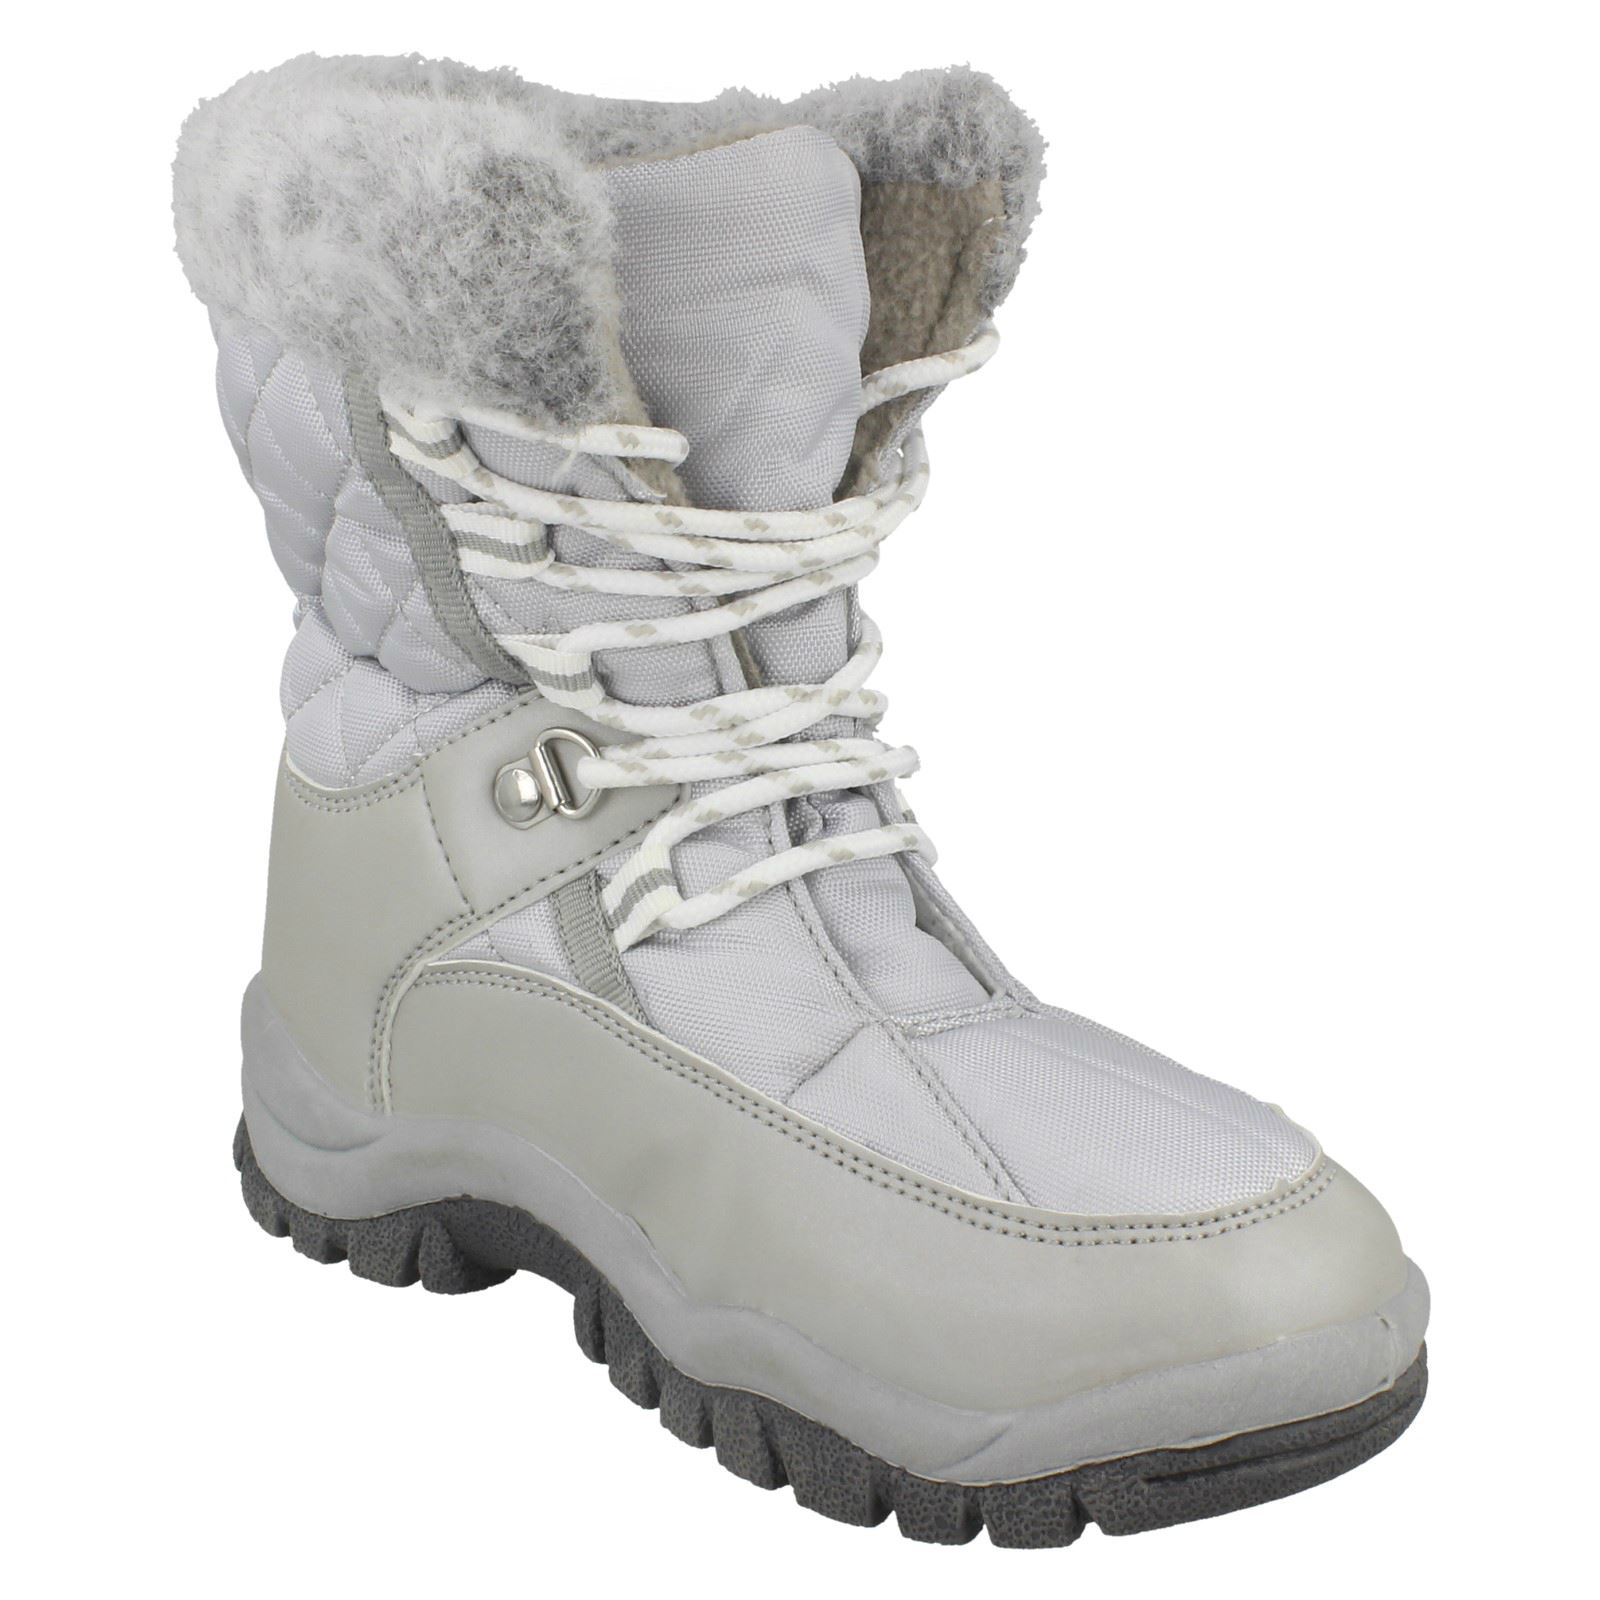 Girls Sopt On Snow Boots Fashion Snow Boot